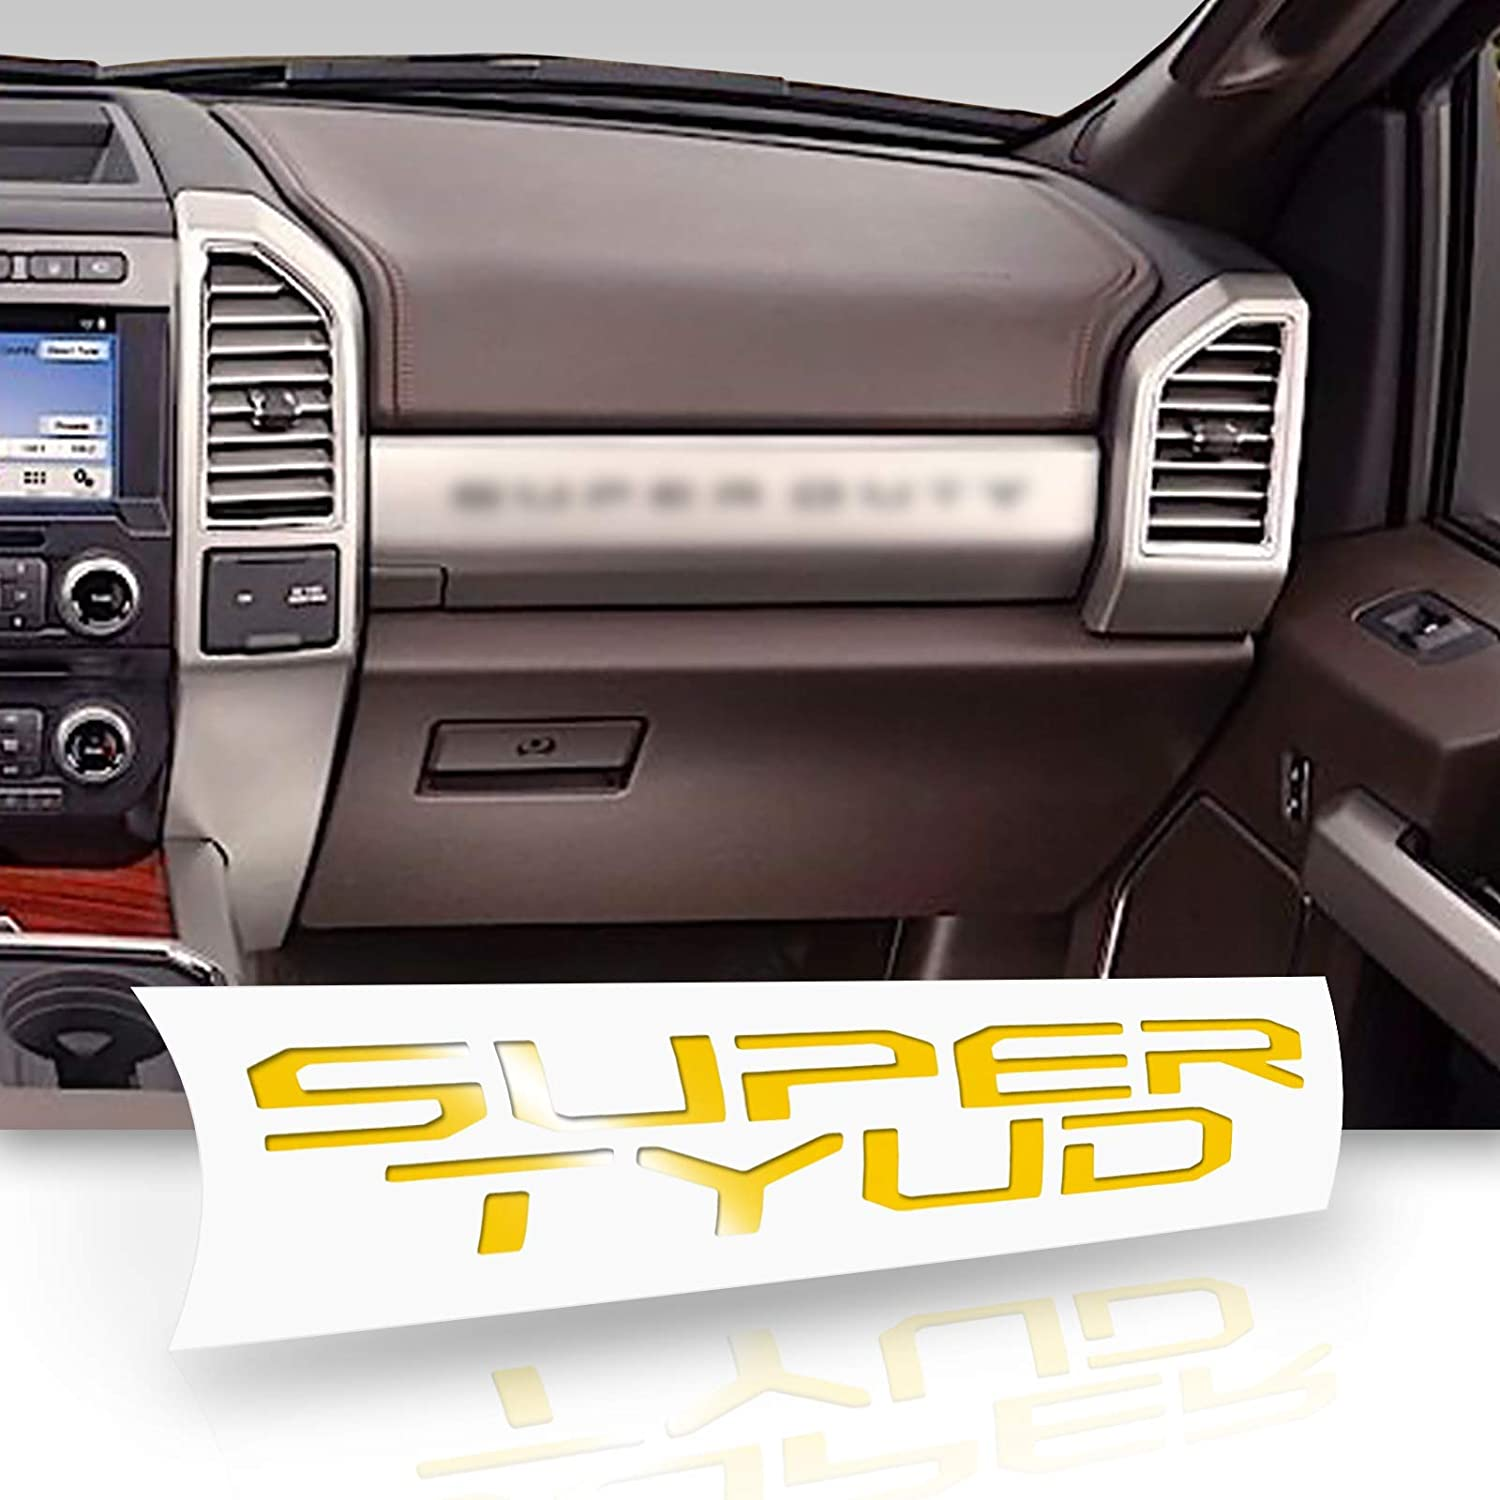 Optix Glovebox Compartment Vinyl Decal Letters Overlay Trim Wrap Inserts Sticker Compatible with and Fits Super Duty 2017 2018 Gloss Black